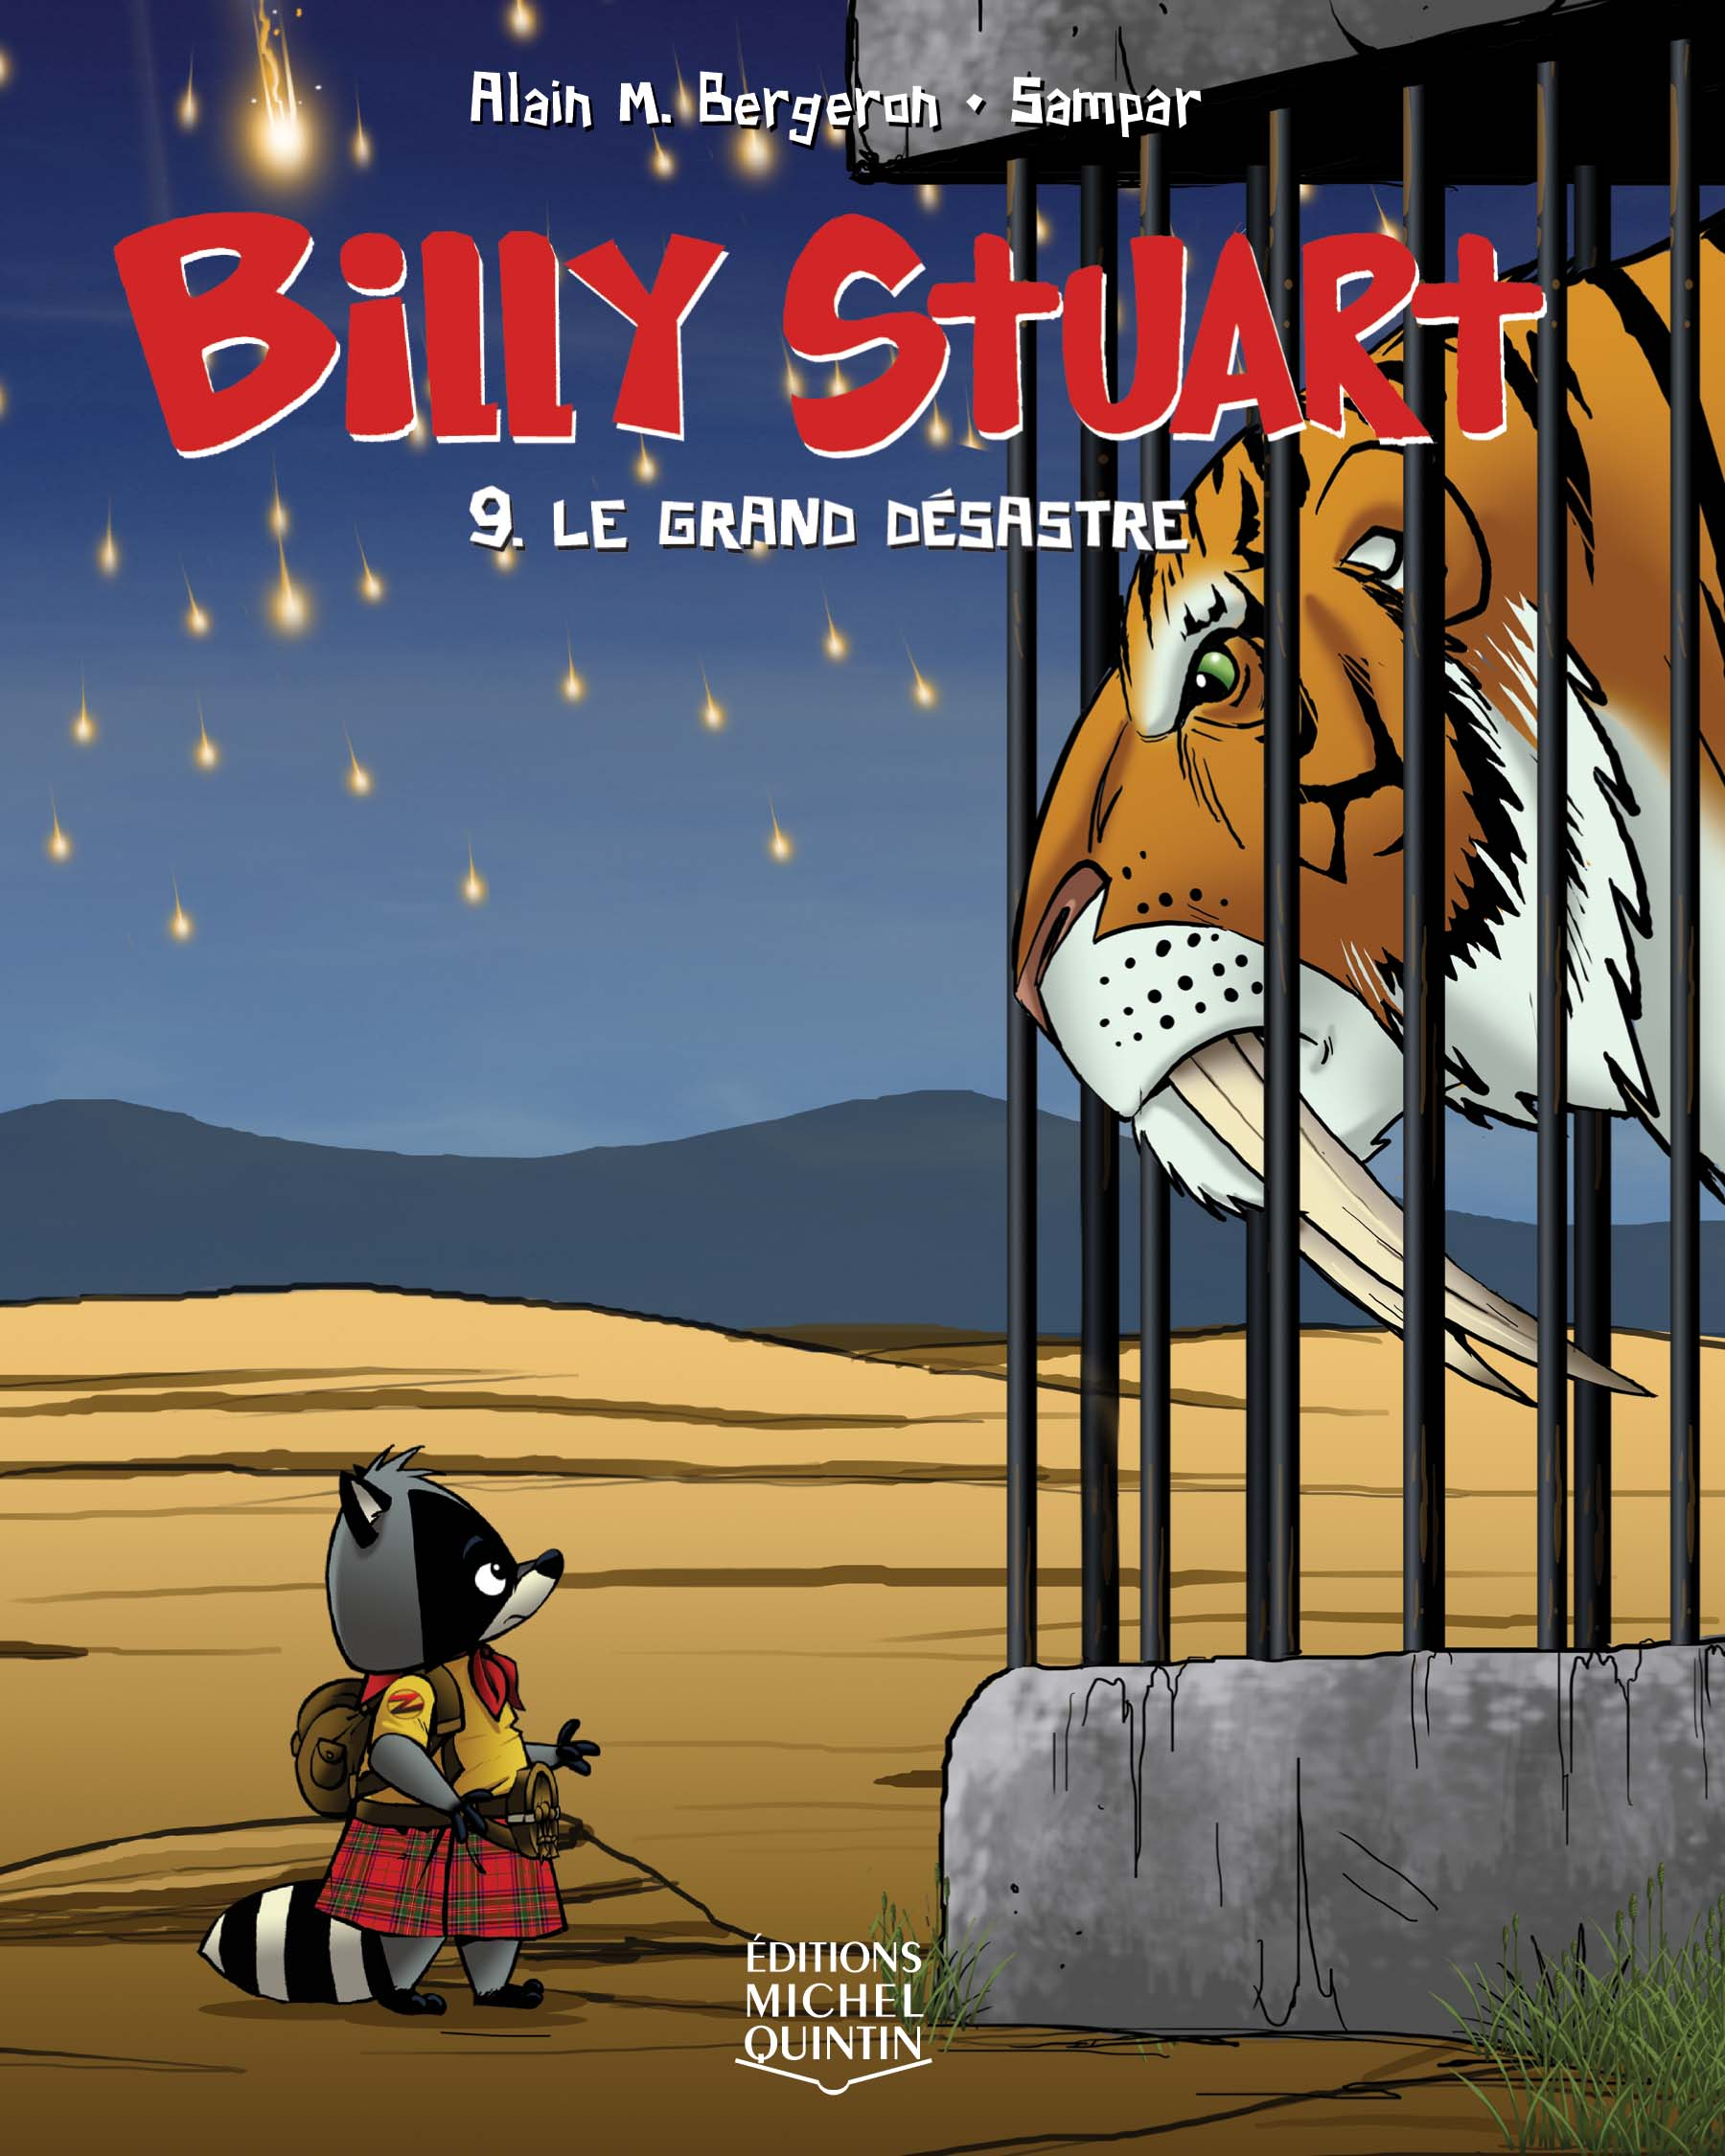 Billy Stuart T.9 : Le grand désastre - Alain m. Bergeron,  Sampar